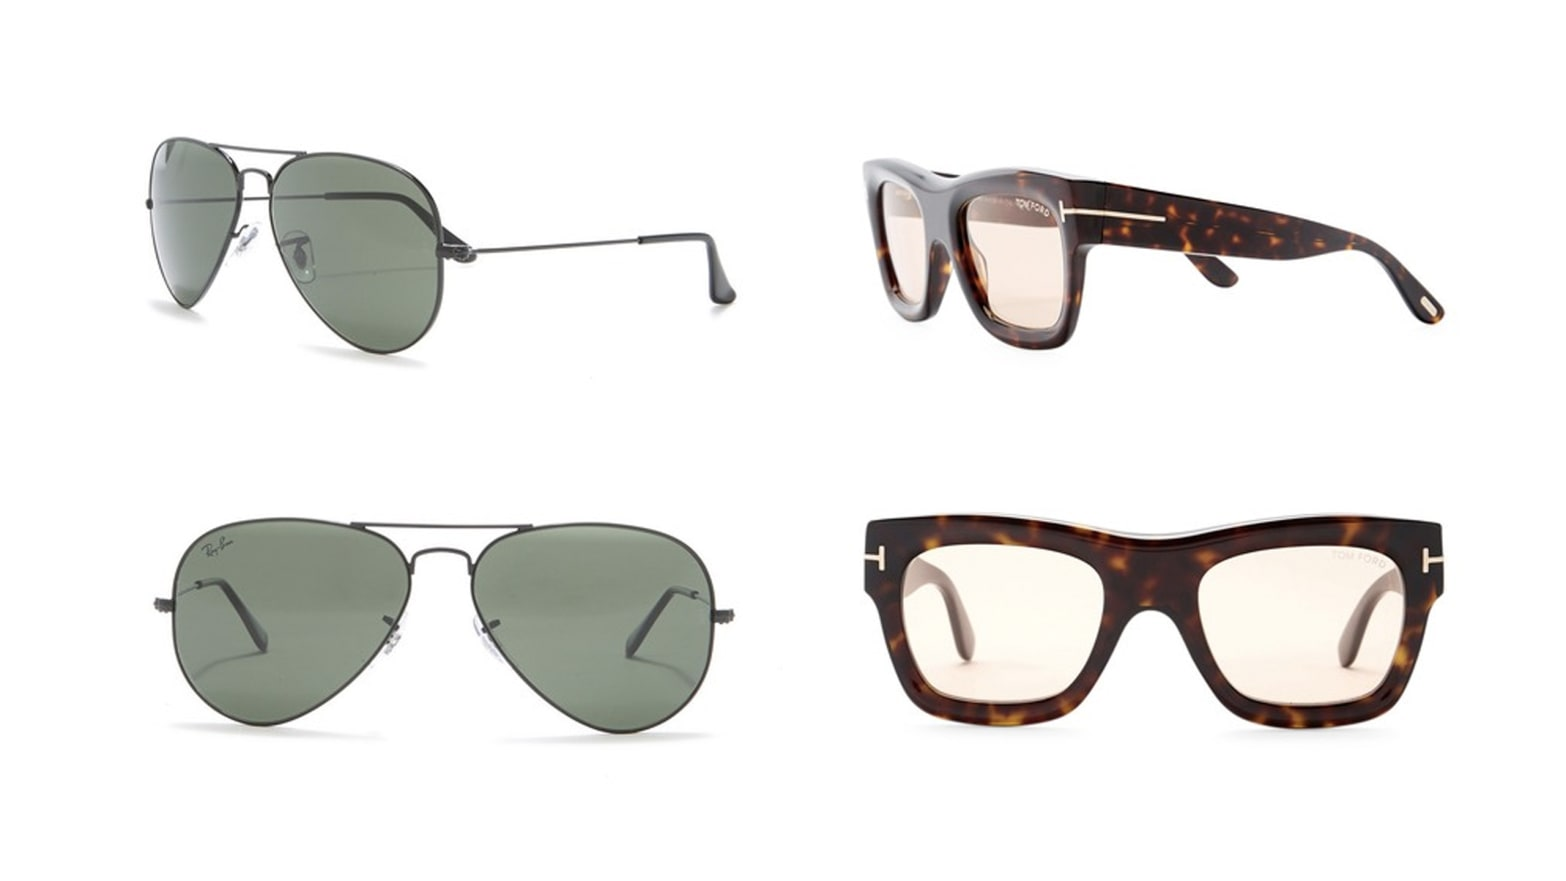 Tom Ford, Ray-Ban, and More Designer Sunglasses Are on Sale at Nordstrom Rack